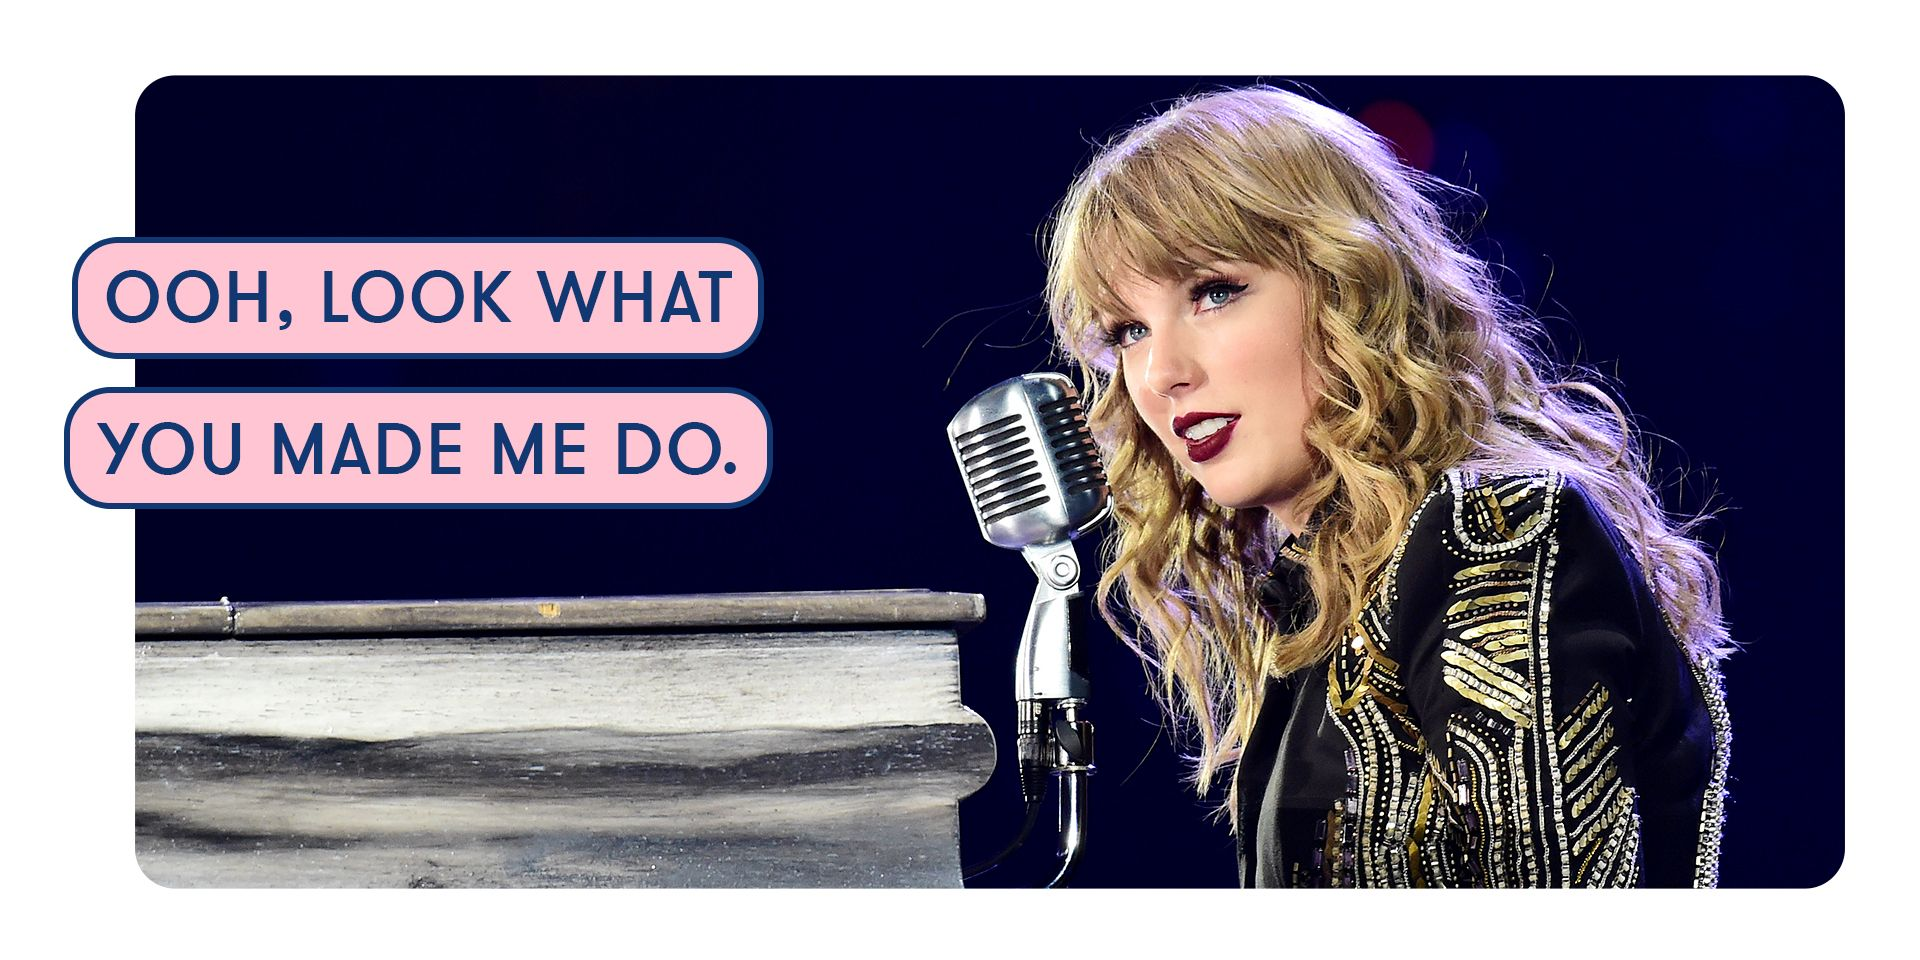 45 Taylor Swift Lyrics And Quotes For Instagram Captions